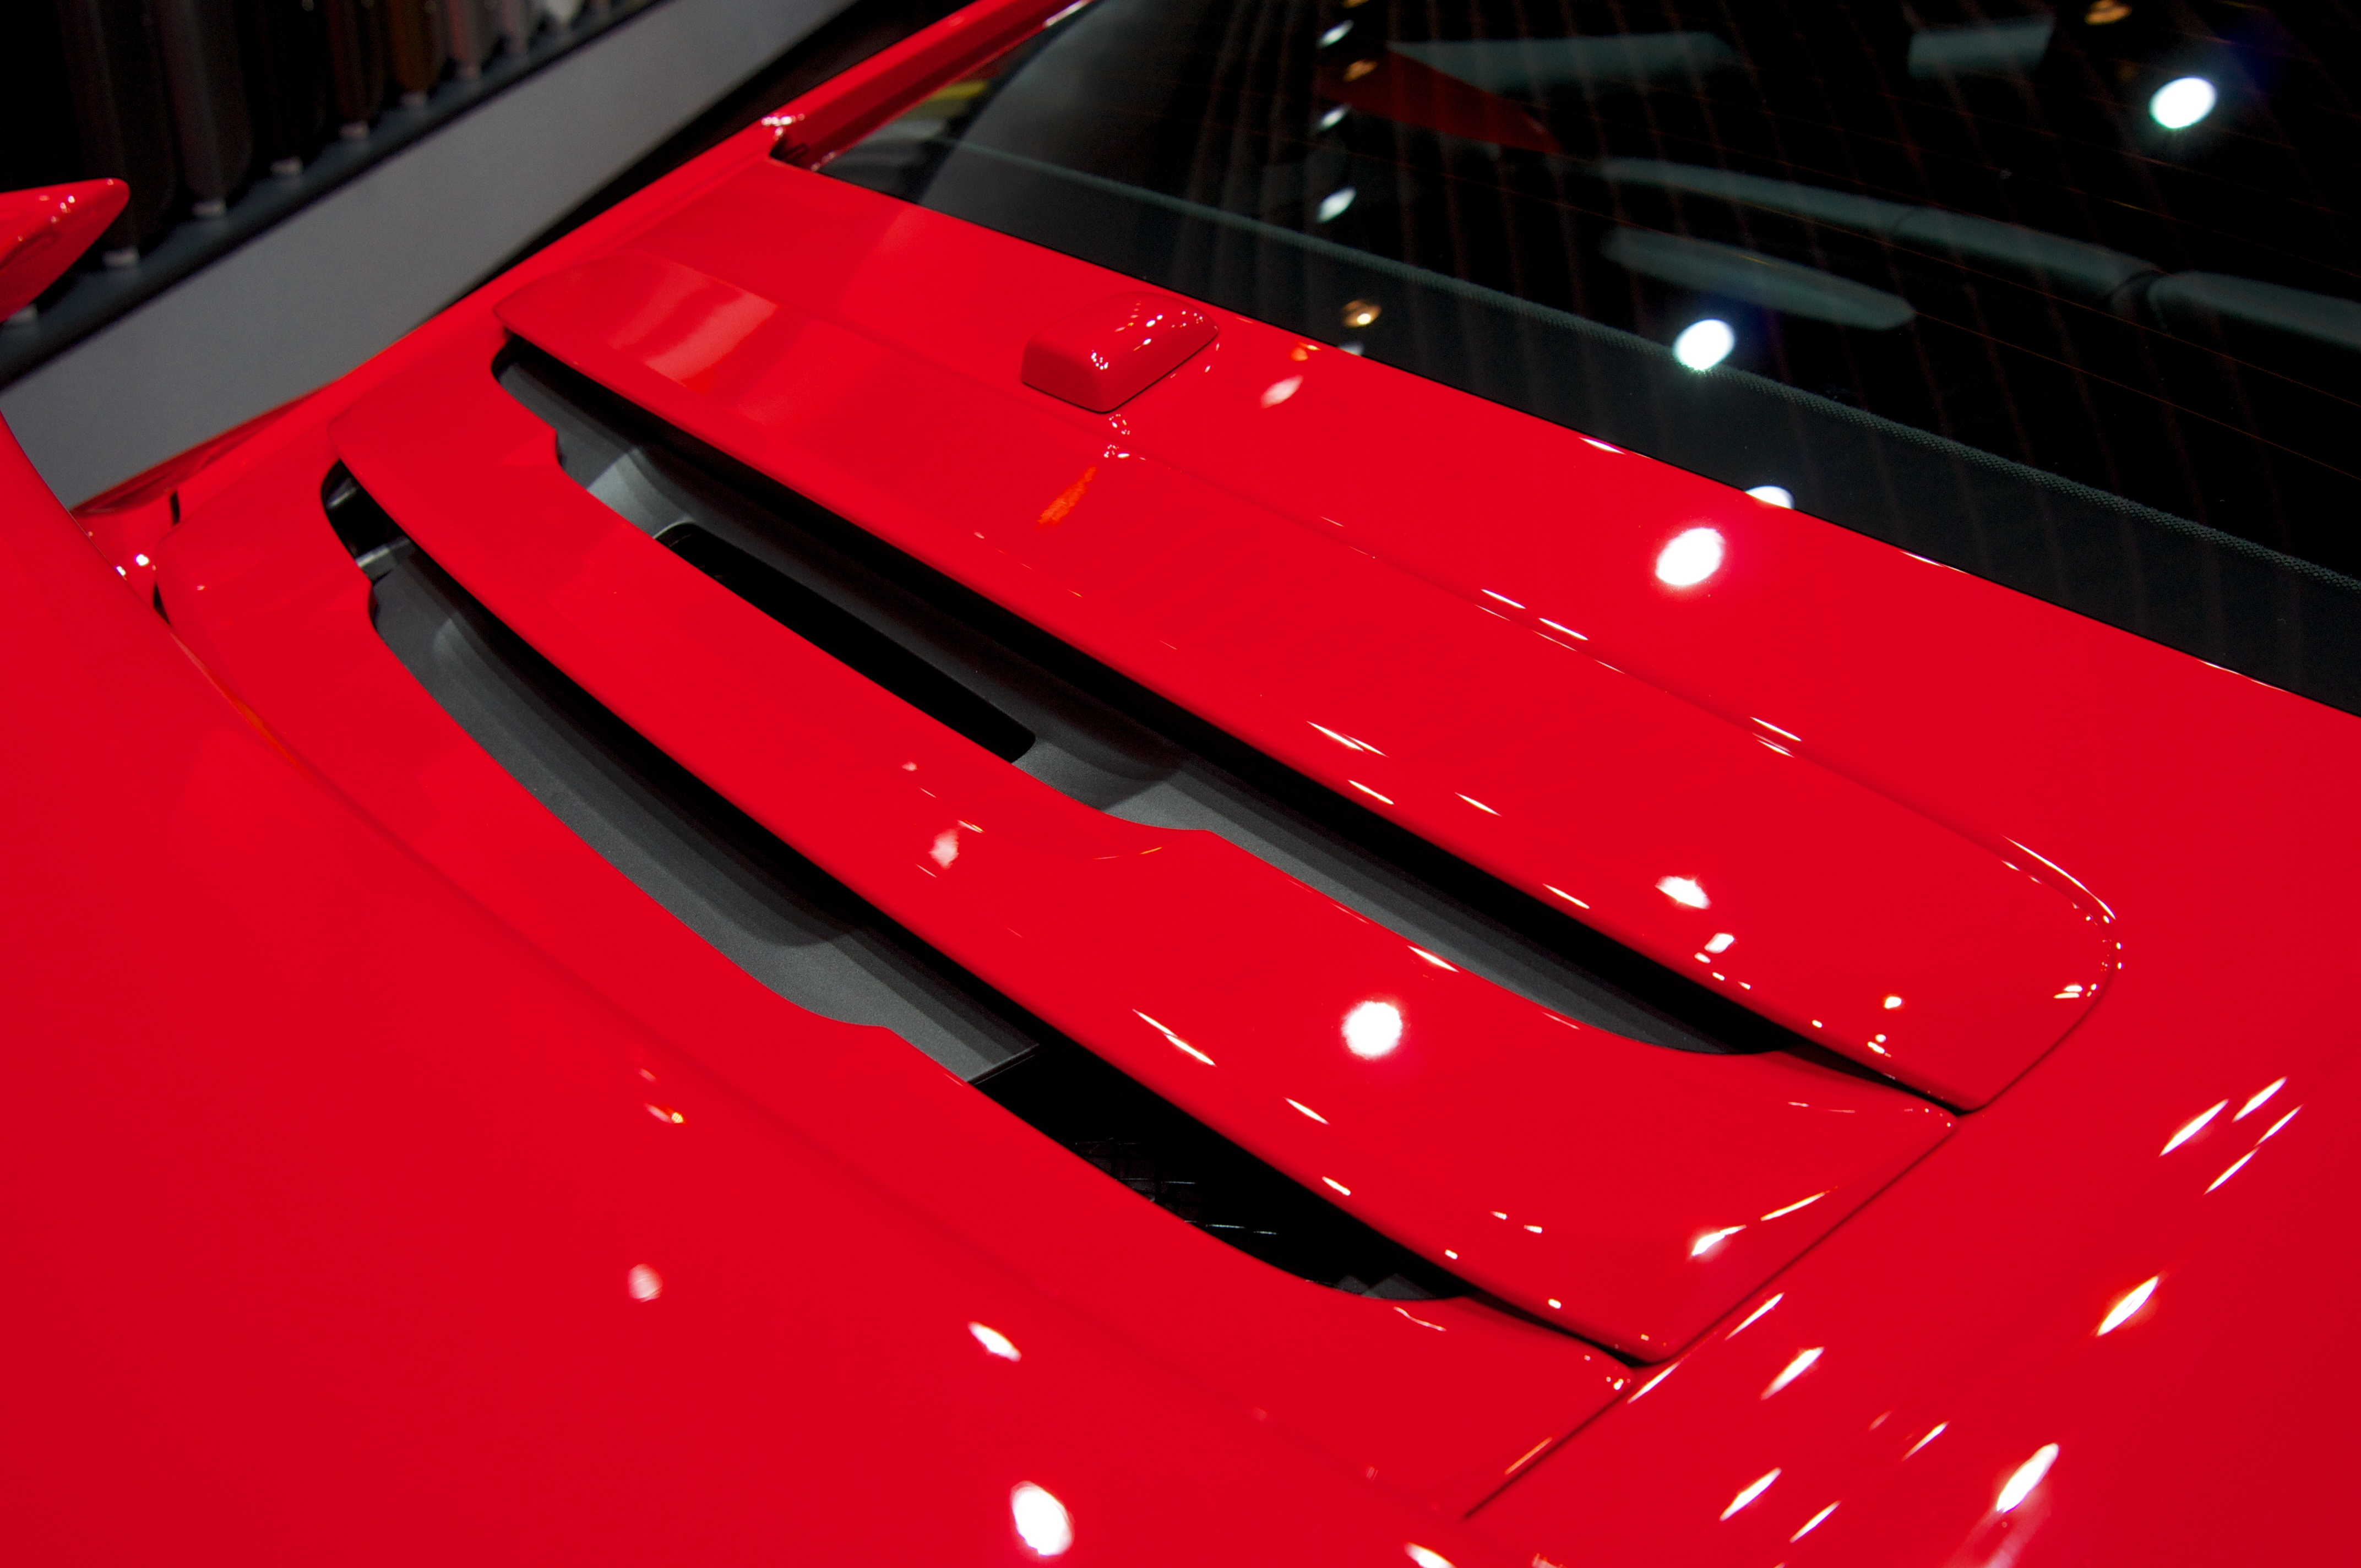 2012-porsche-911-carrera-red-2012-los-angeles-auto-show-by-stevelyon_02